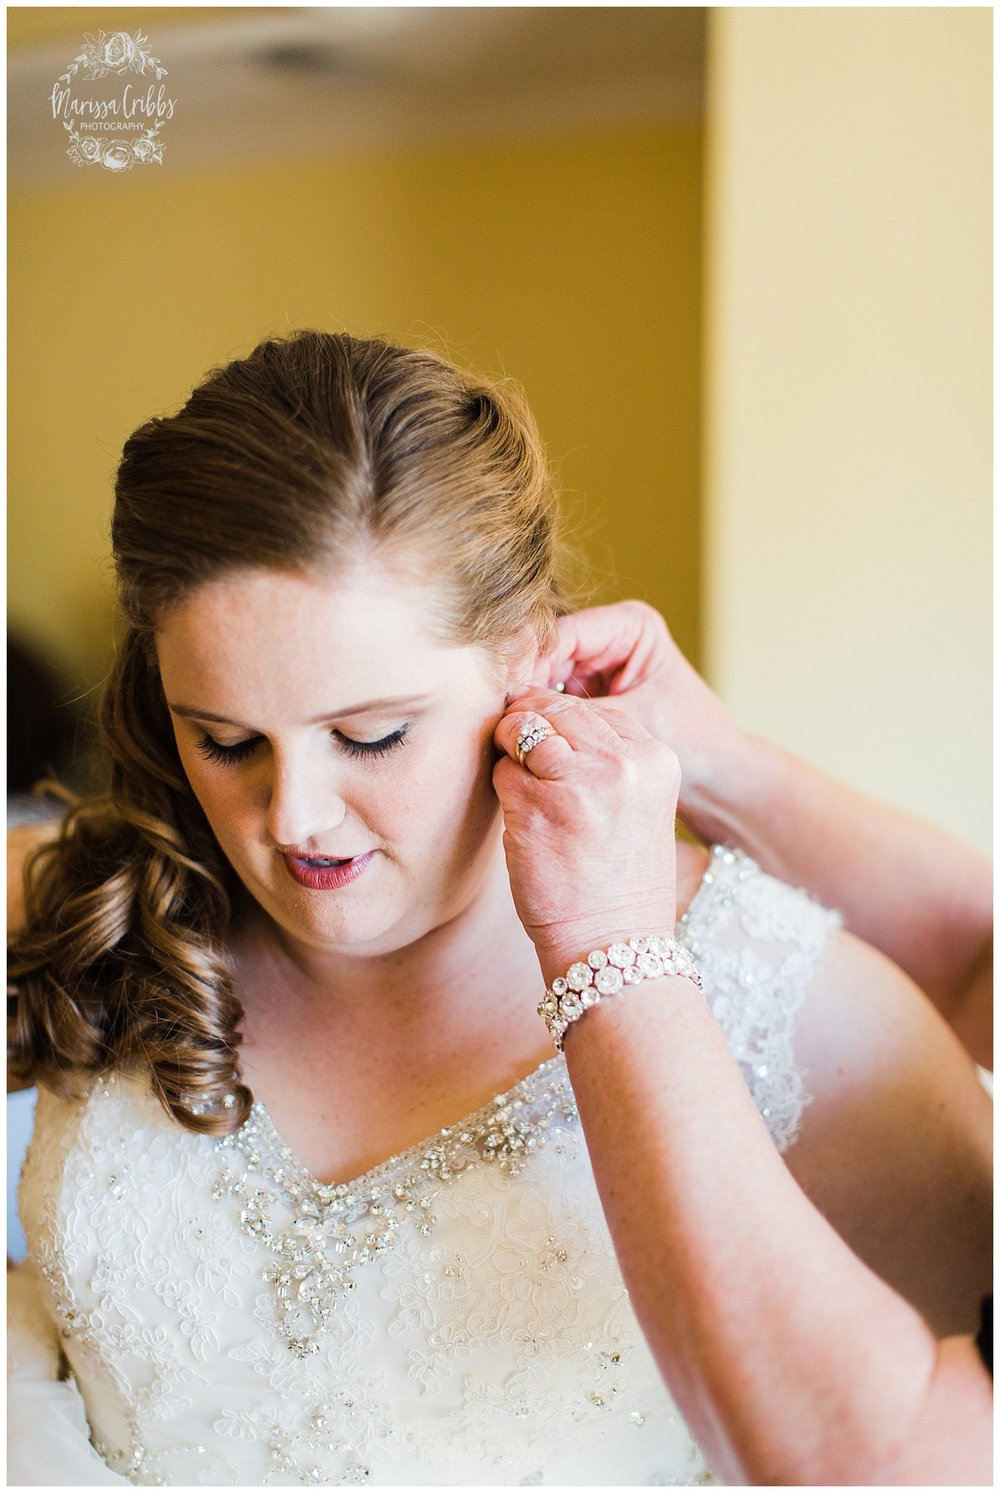 KELLY WEDDING | VENUE AT WILLOW CREEK | MARISSA CRIBBS PHOTOGRAPHY_3673.jpg